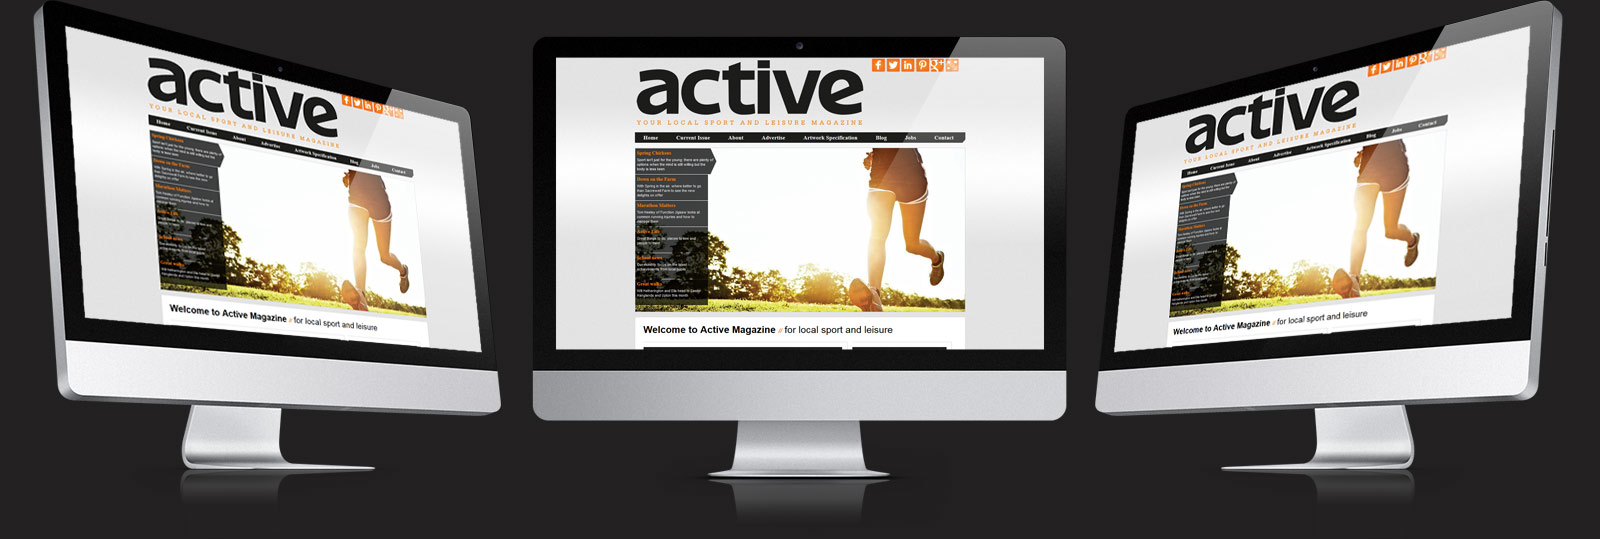 Stamford Web Design - The Active Magazine